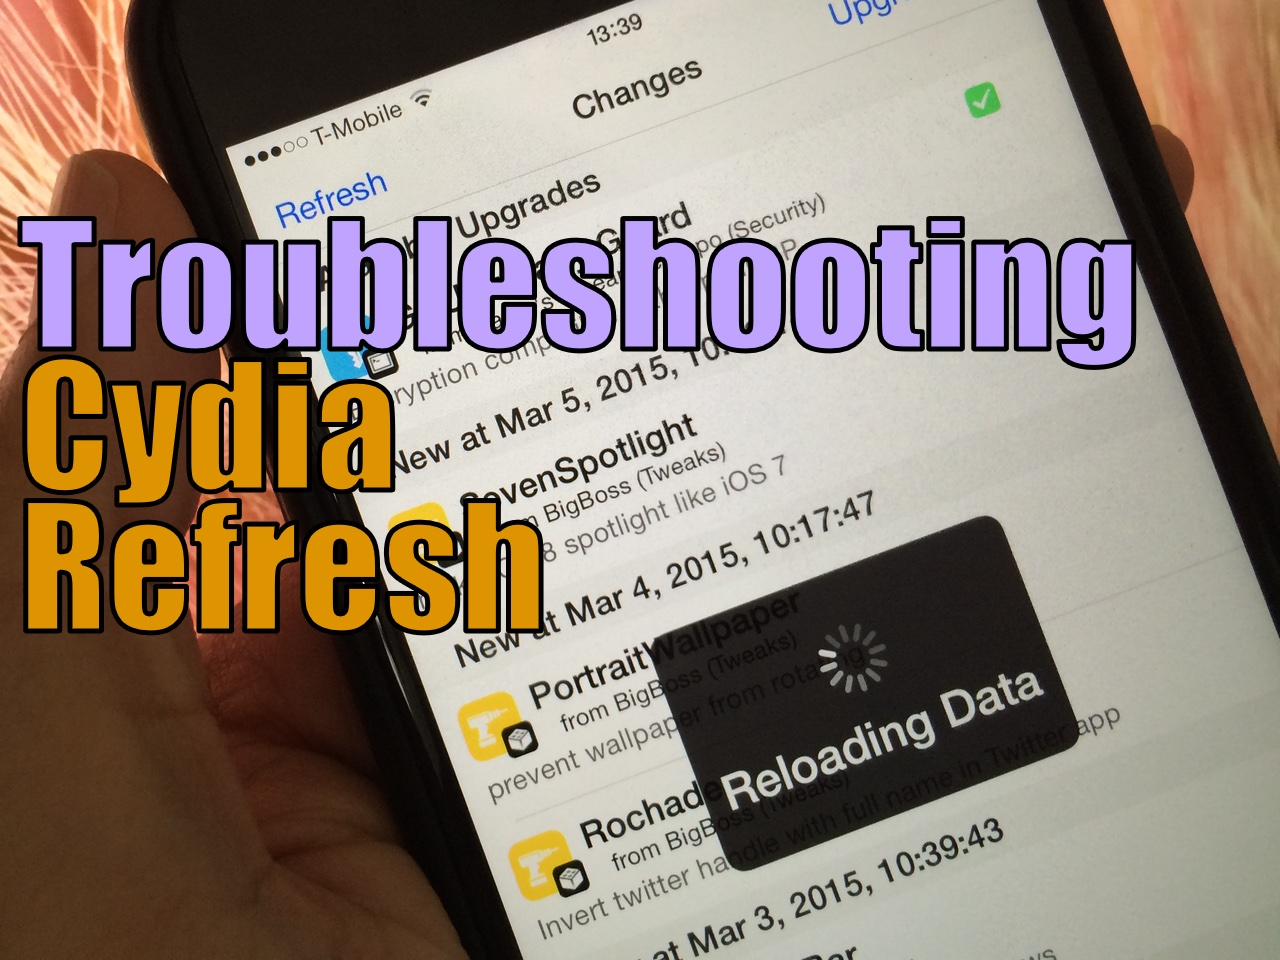 How to troubleshoot Cydia refresh issues